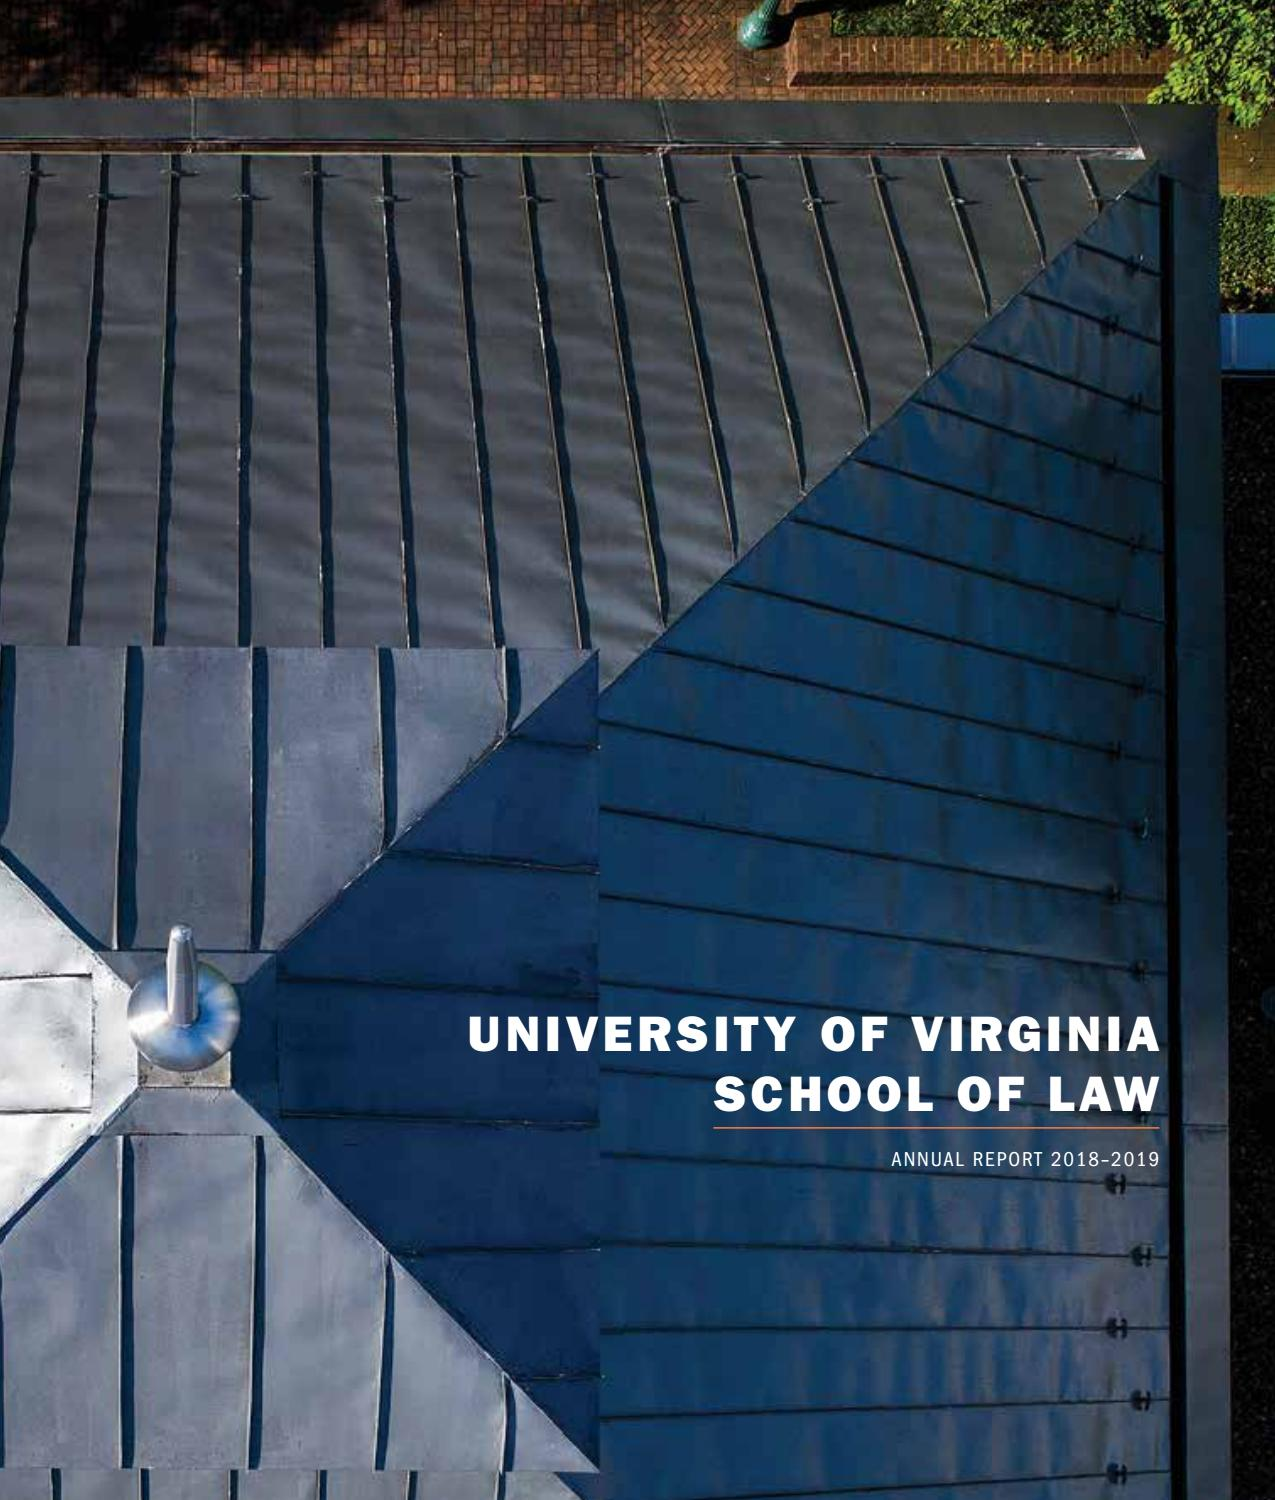 Uva Law 2018 19 Annual Report By University Of Virginia School Of Law Issuu